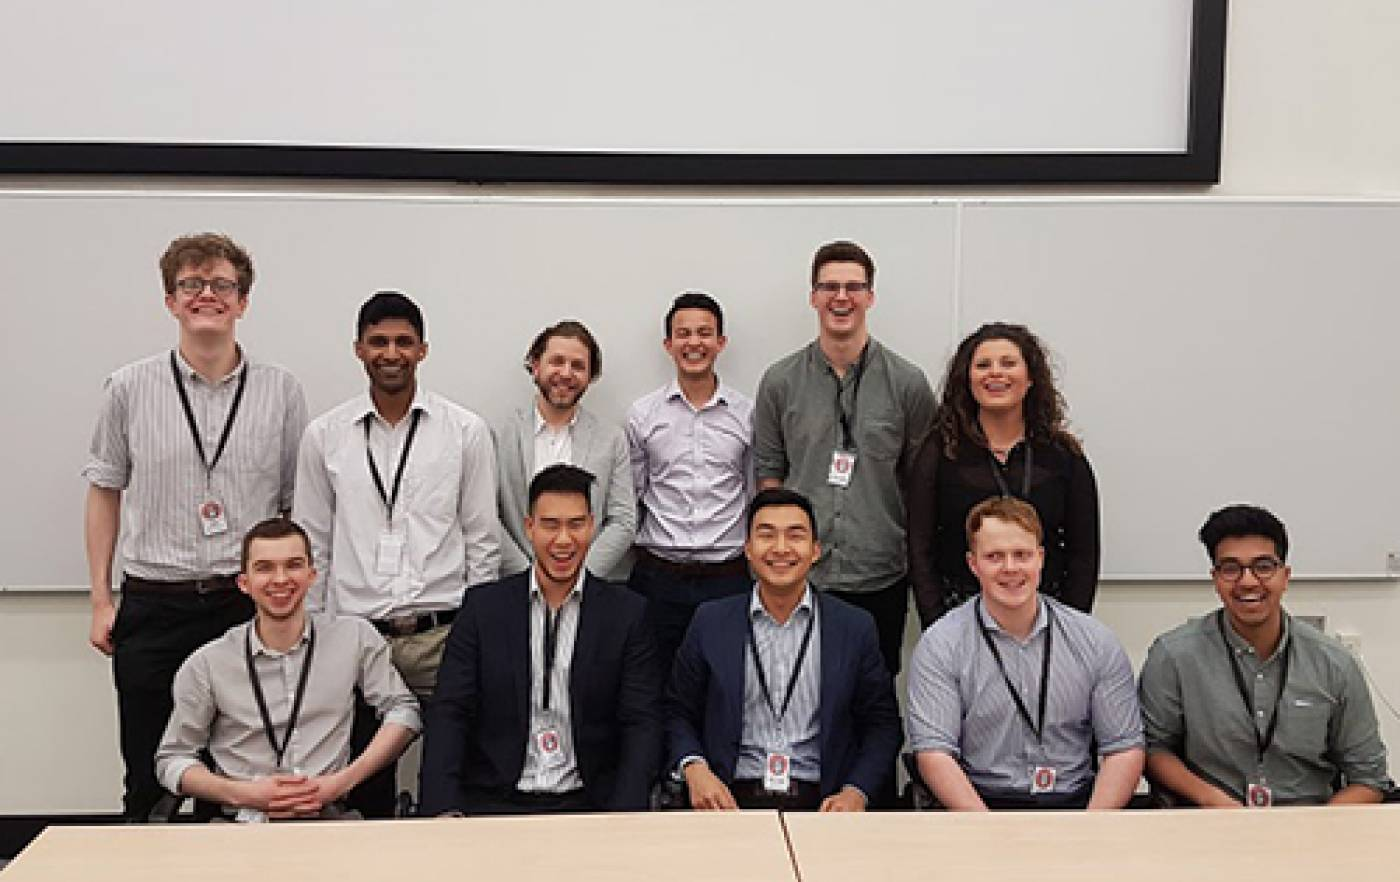 The team behind the 2017 UCL MedTech Conference